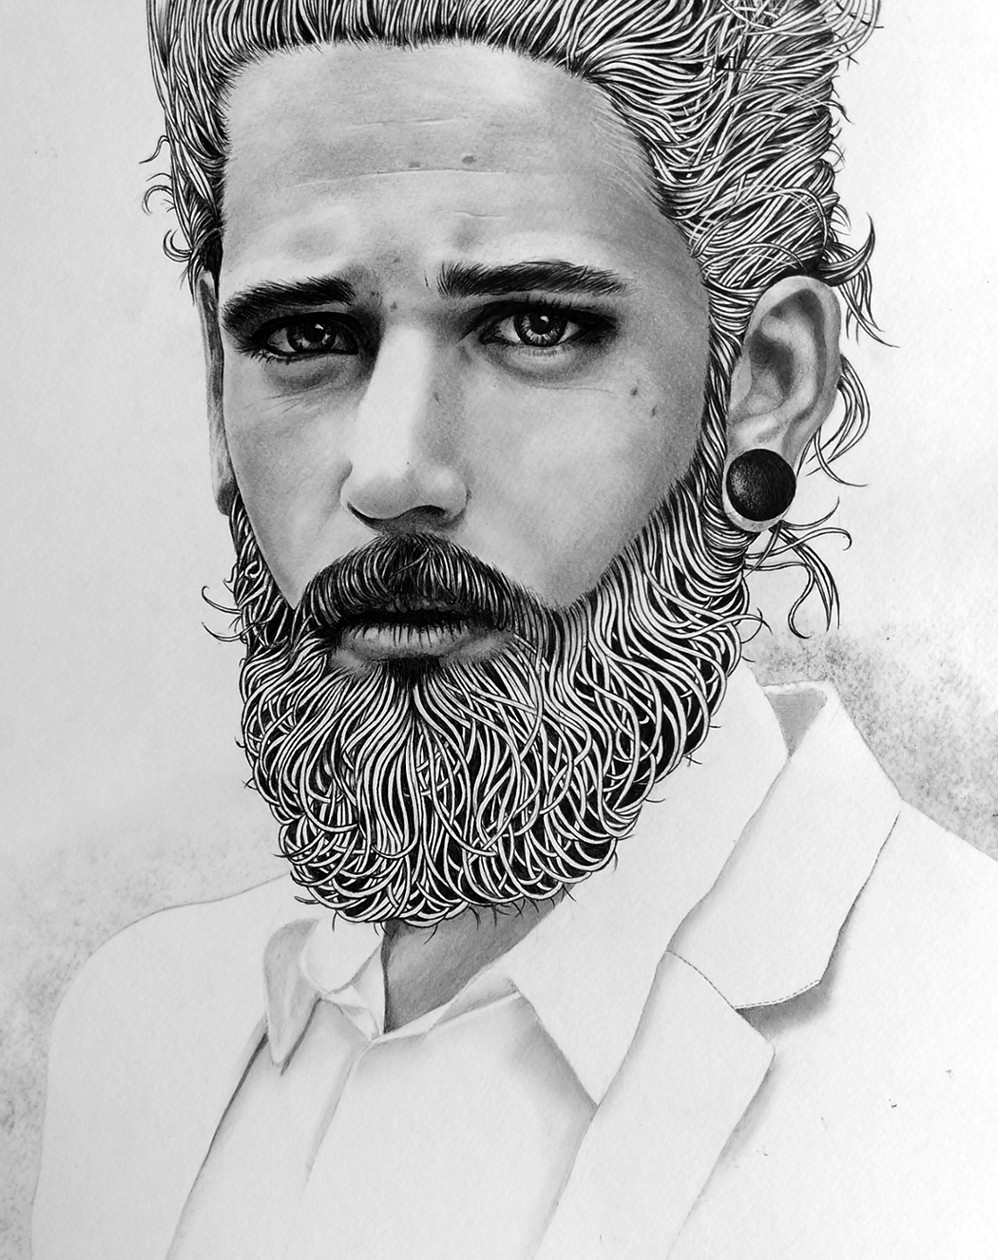 Finished artwork: The finished piece of a young bearded man by Kati Designs